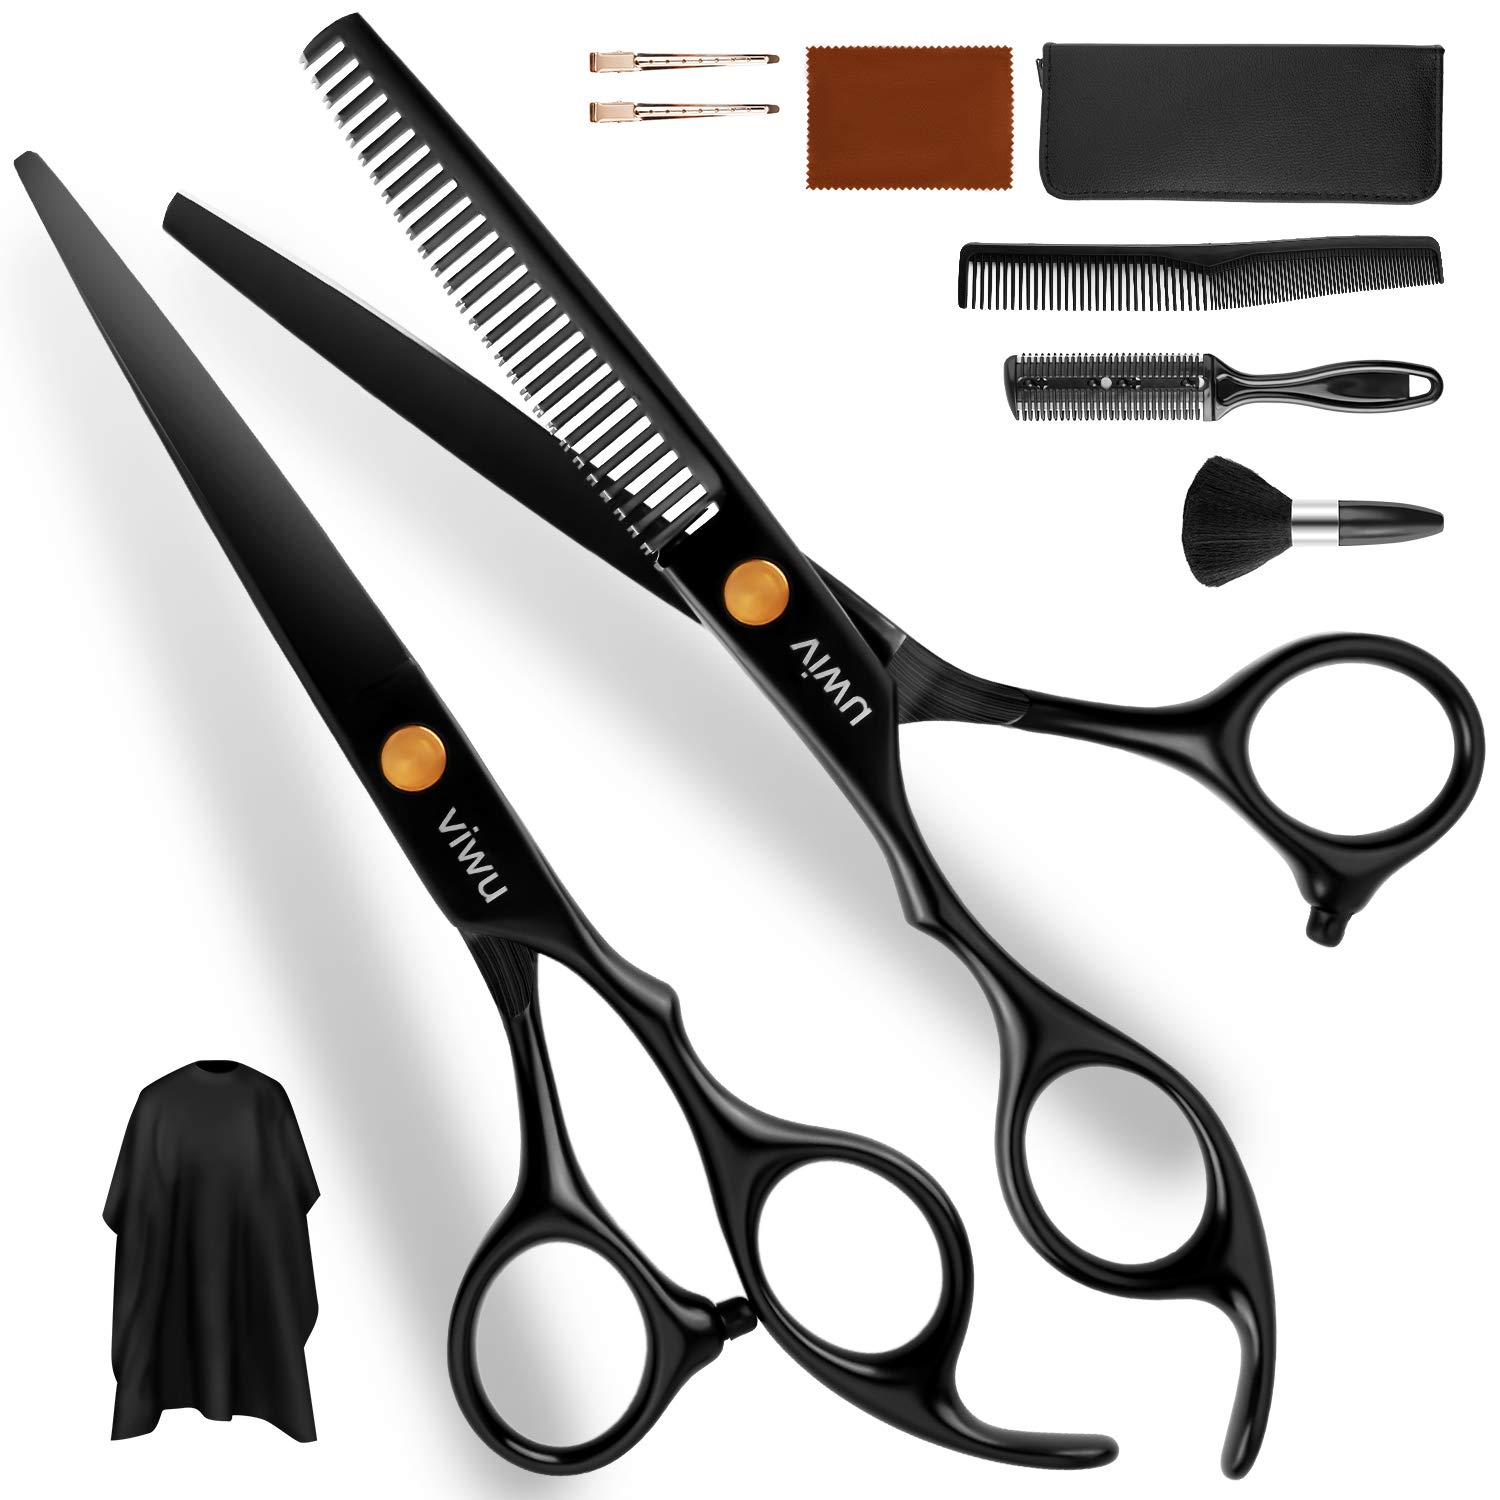 Viwu Barber Shears Home Hair Cutting Scissors Set, 10 Pcs Professional Haircut Scissors Kit with Thinning Shears 6CR 440C Stainless Steel Home Haircutting Scissors Kit for Barber Salon : Beauty & Personal Care